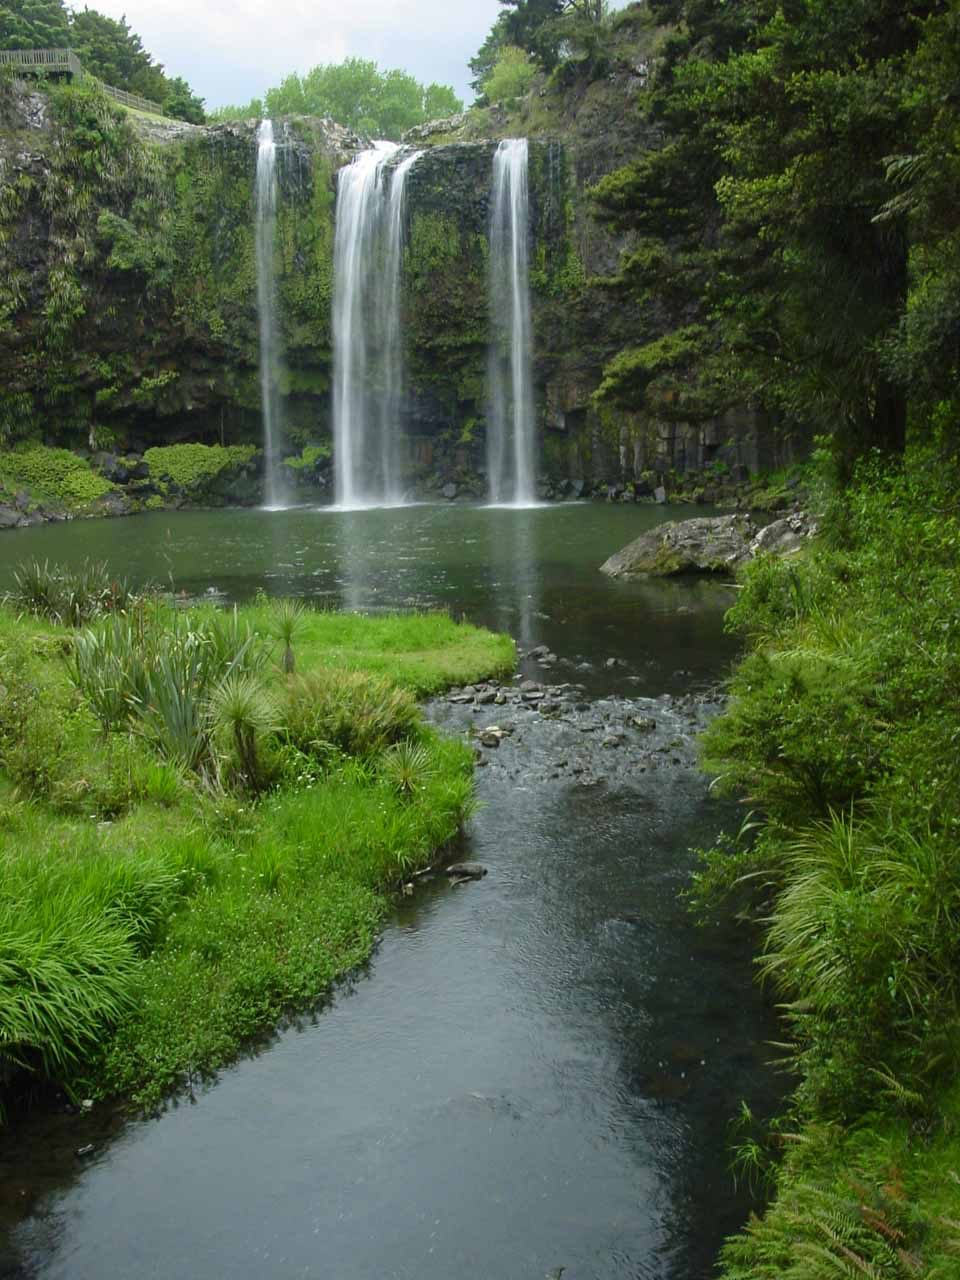 About an hour's drive north of Piroa Falls was the attractive Whangarei Falls by the town of Whangarei